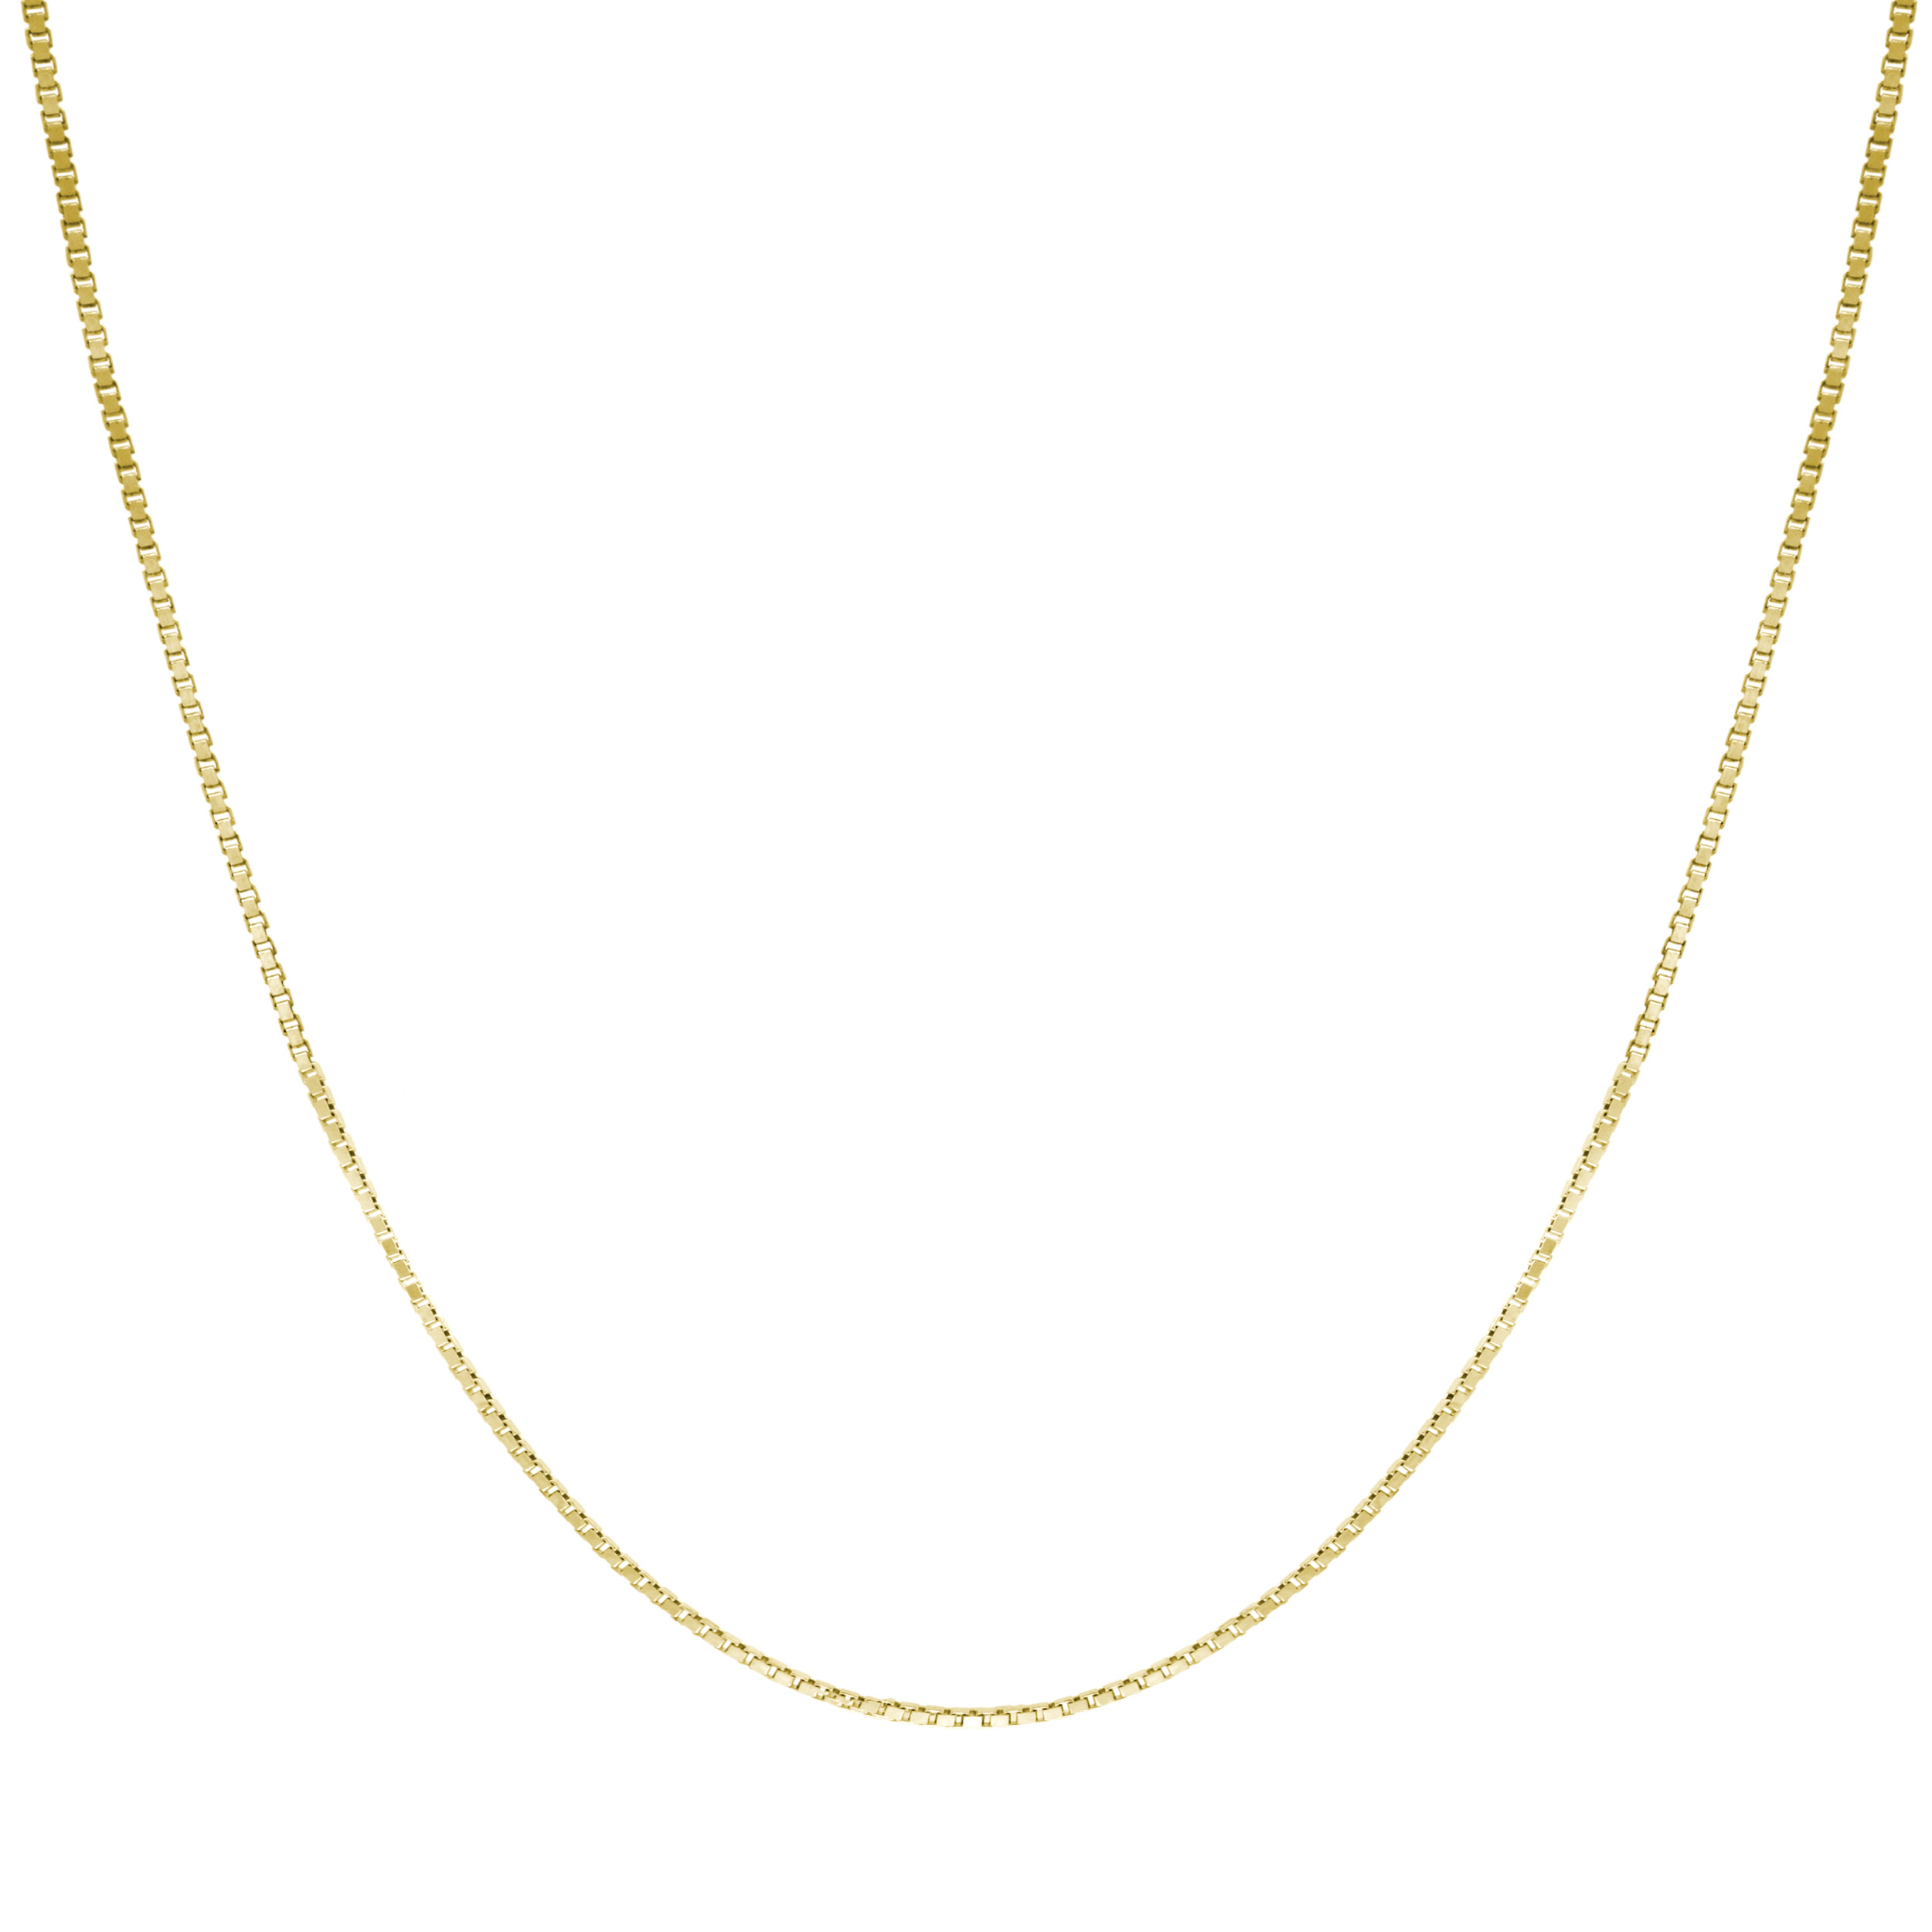 Honolulu Jewelry Company 14K Solid Gold 0.7mm Box Chain Necklace 16-30